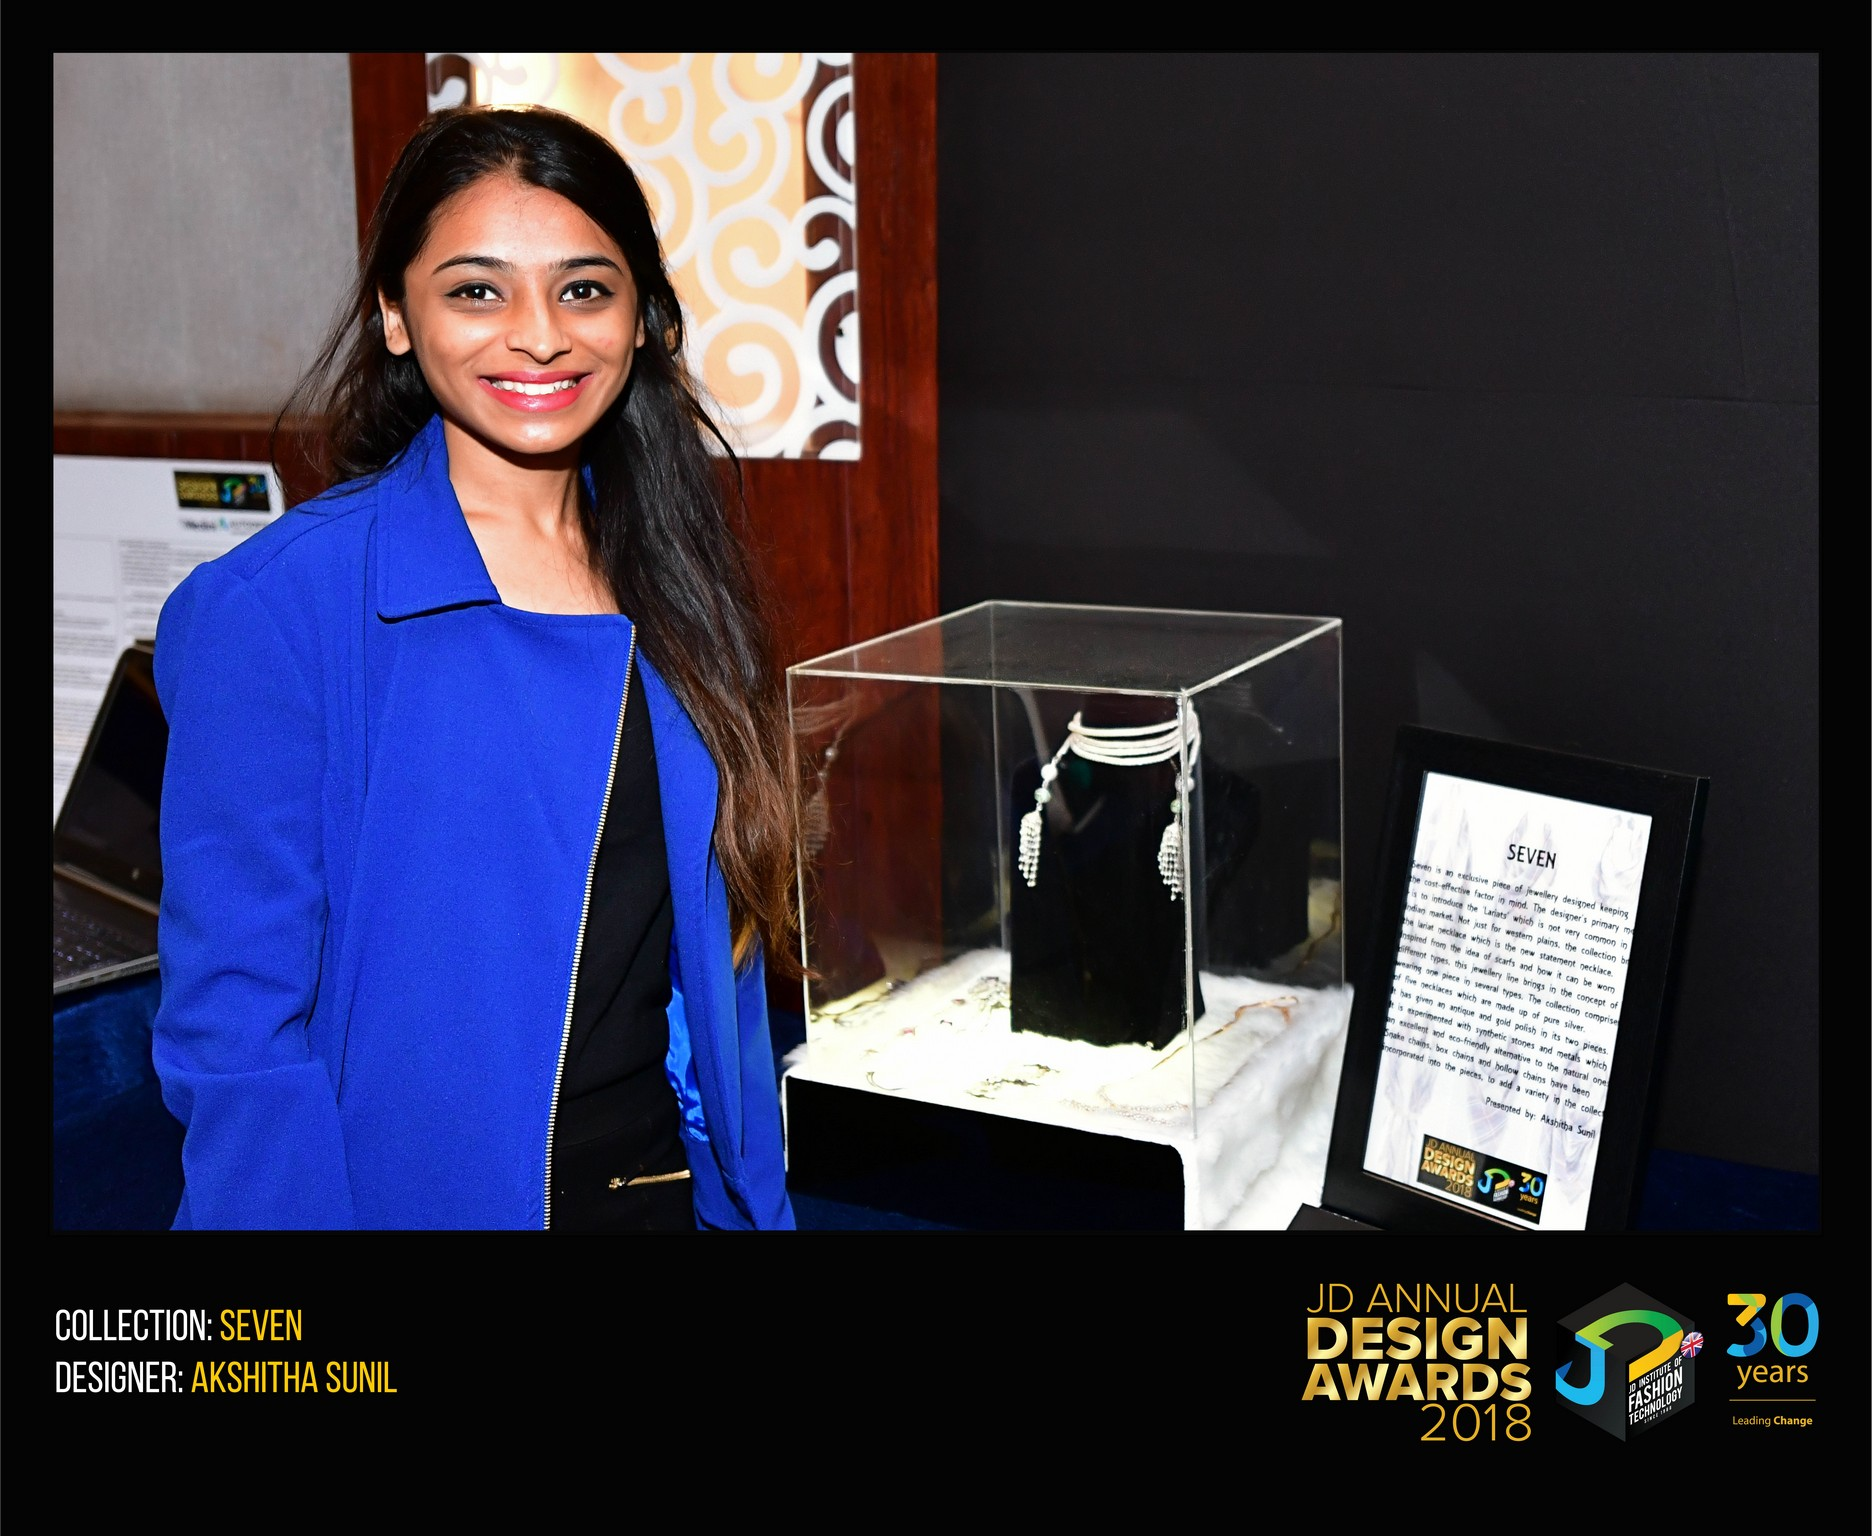 seven - Seven by Akshitha1 - Seven – Change – JD Annual Design Awards 2018